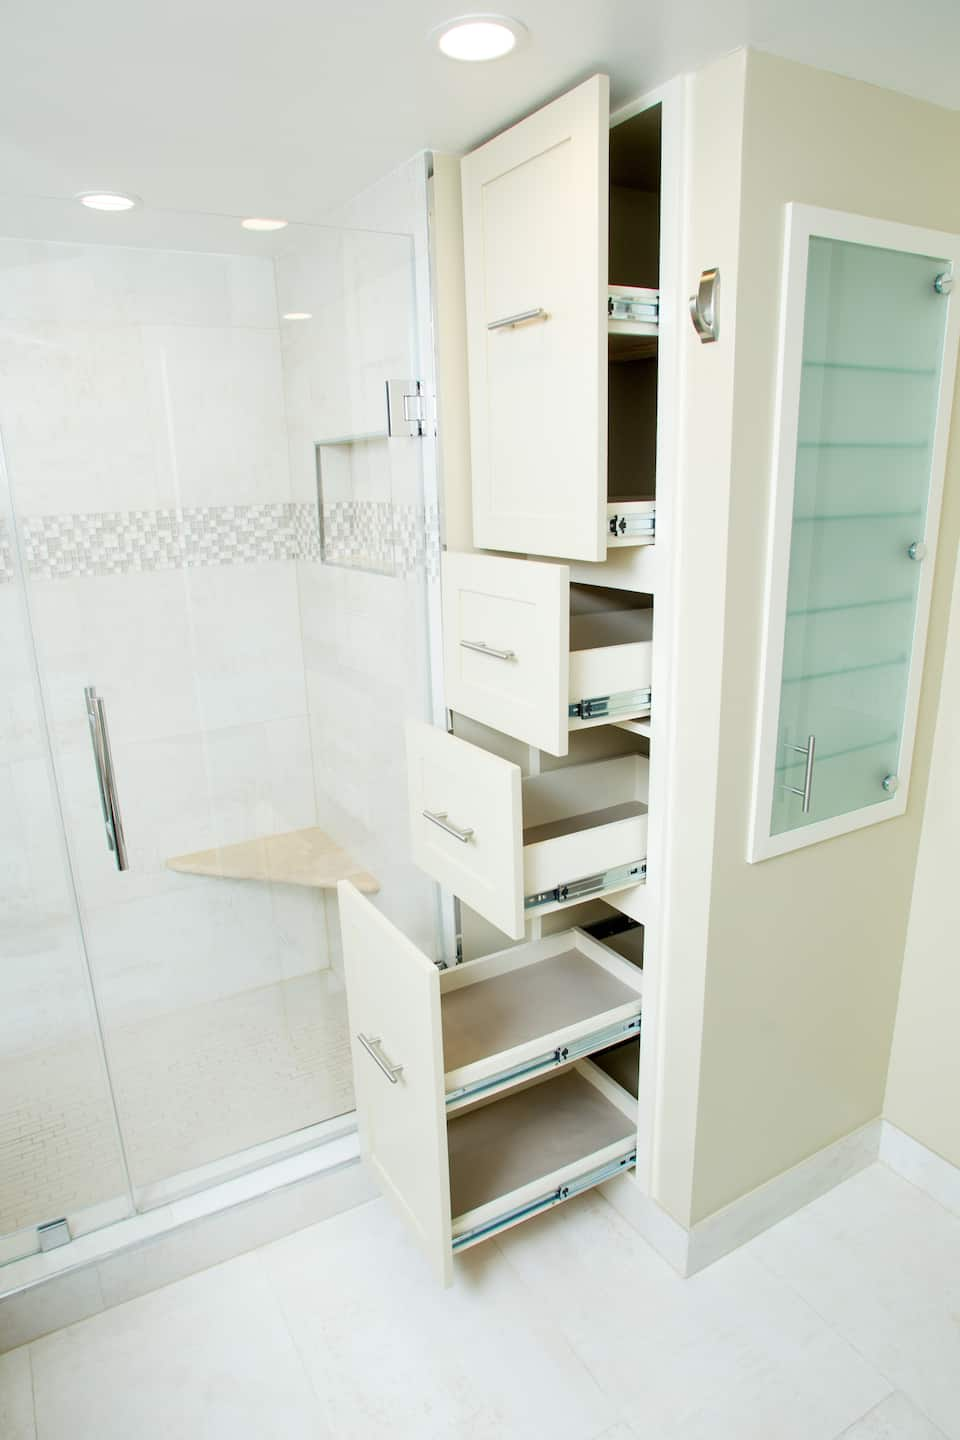 custom bathroom cabinets with recessed medicine cabinet and pullout drawers next to walk in shower - Bathroom Cabinets Ideas